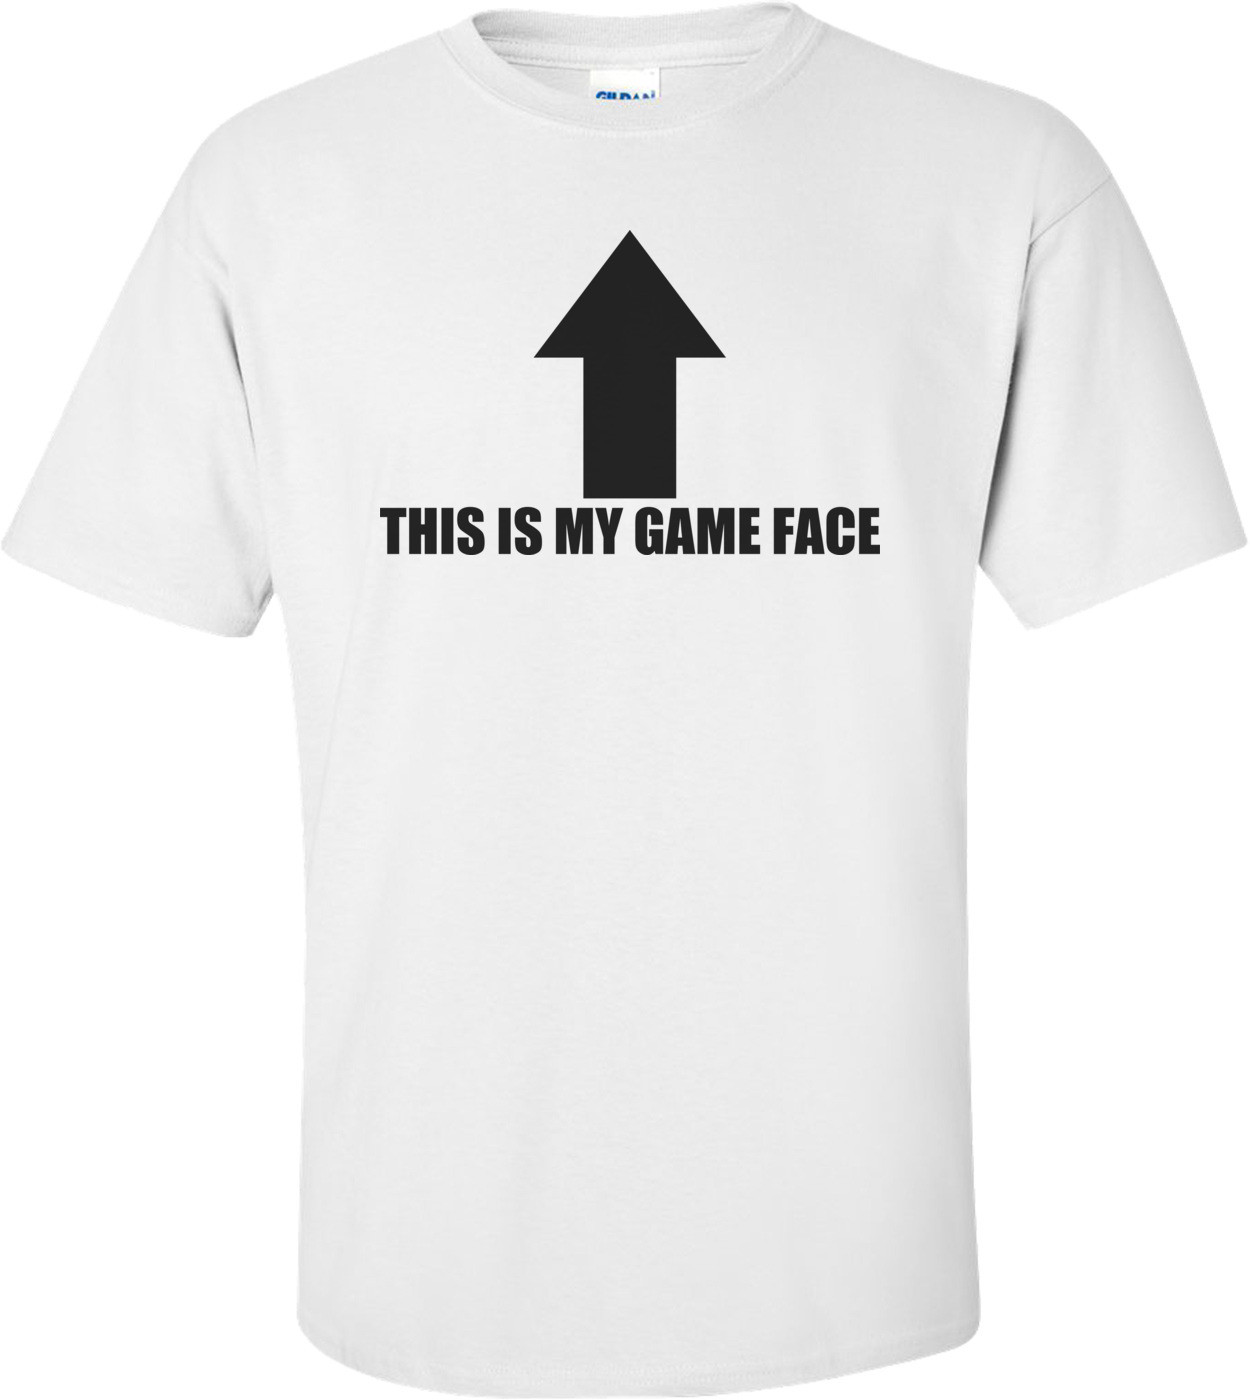 This Is My Game Face Shirt